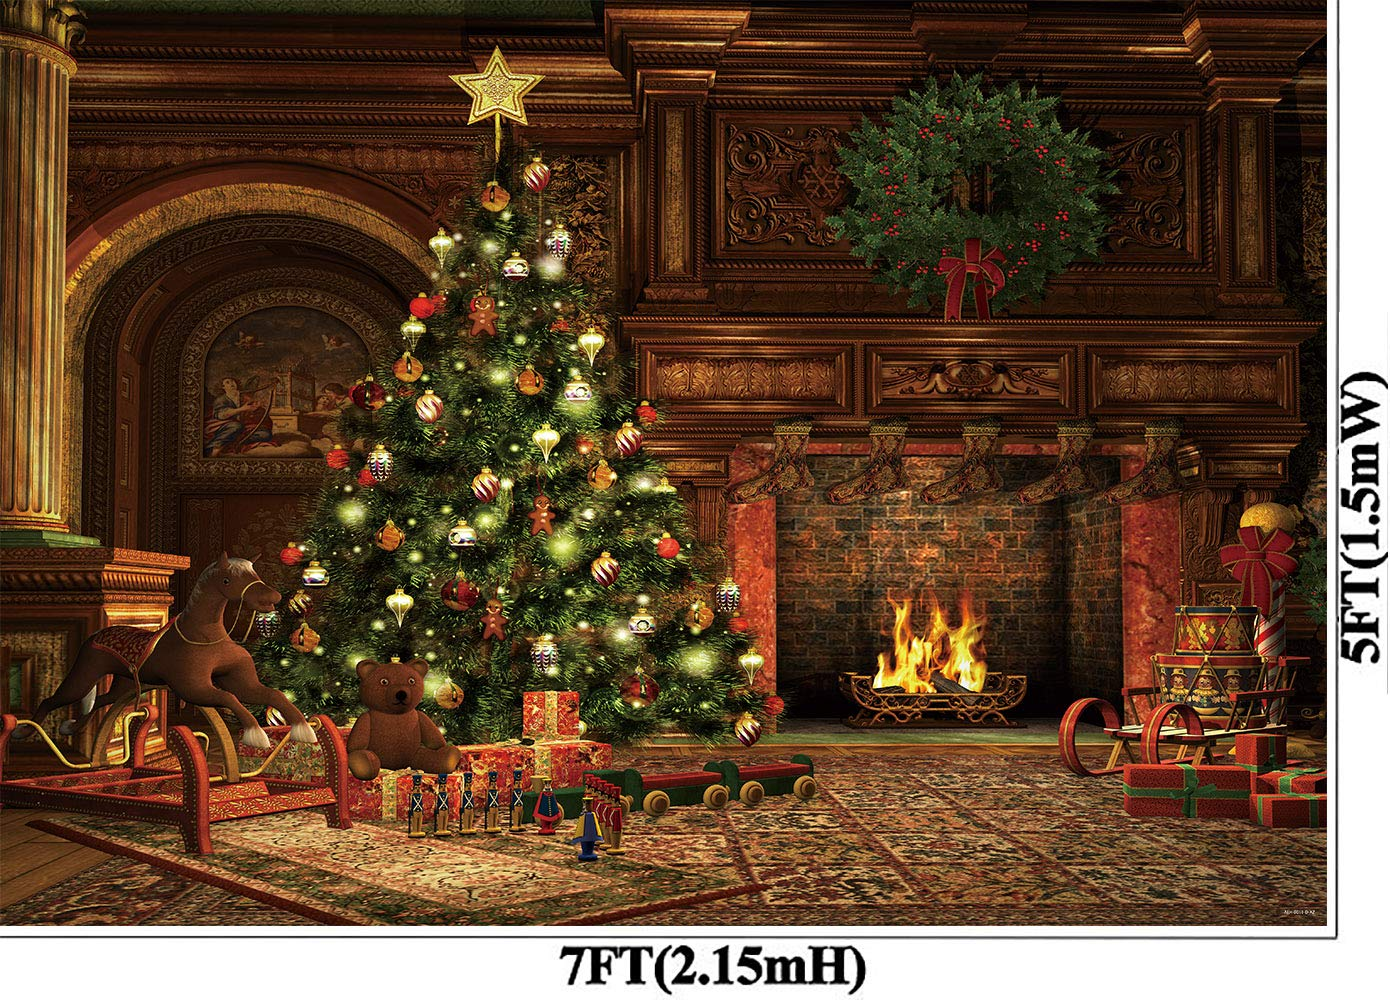 Christmas Tree Living.Allenjoy 7x5ft Christmas Eve Photography Backdrops Vintage Living Room Xmas Tree Fireplace Presents Year Party Decorations Background Photo Studio